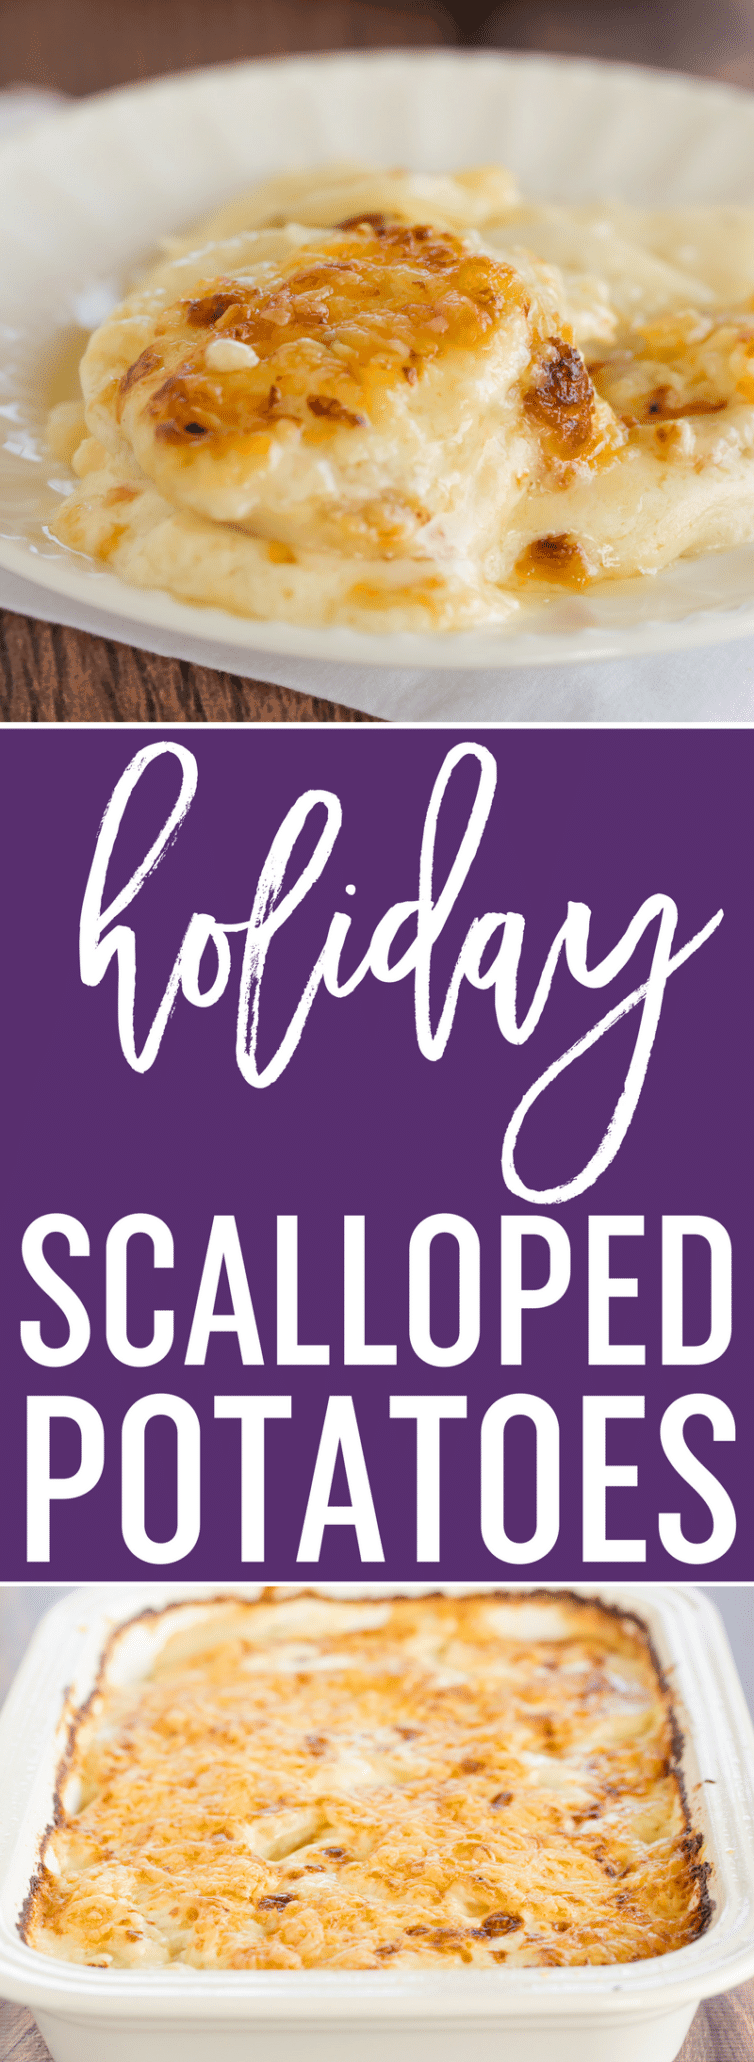 Scalloped Potatoes A Classic Dish And Holiday Staple This Easy Homemade Recipe Comes Together